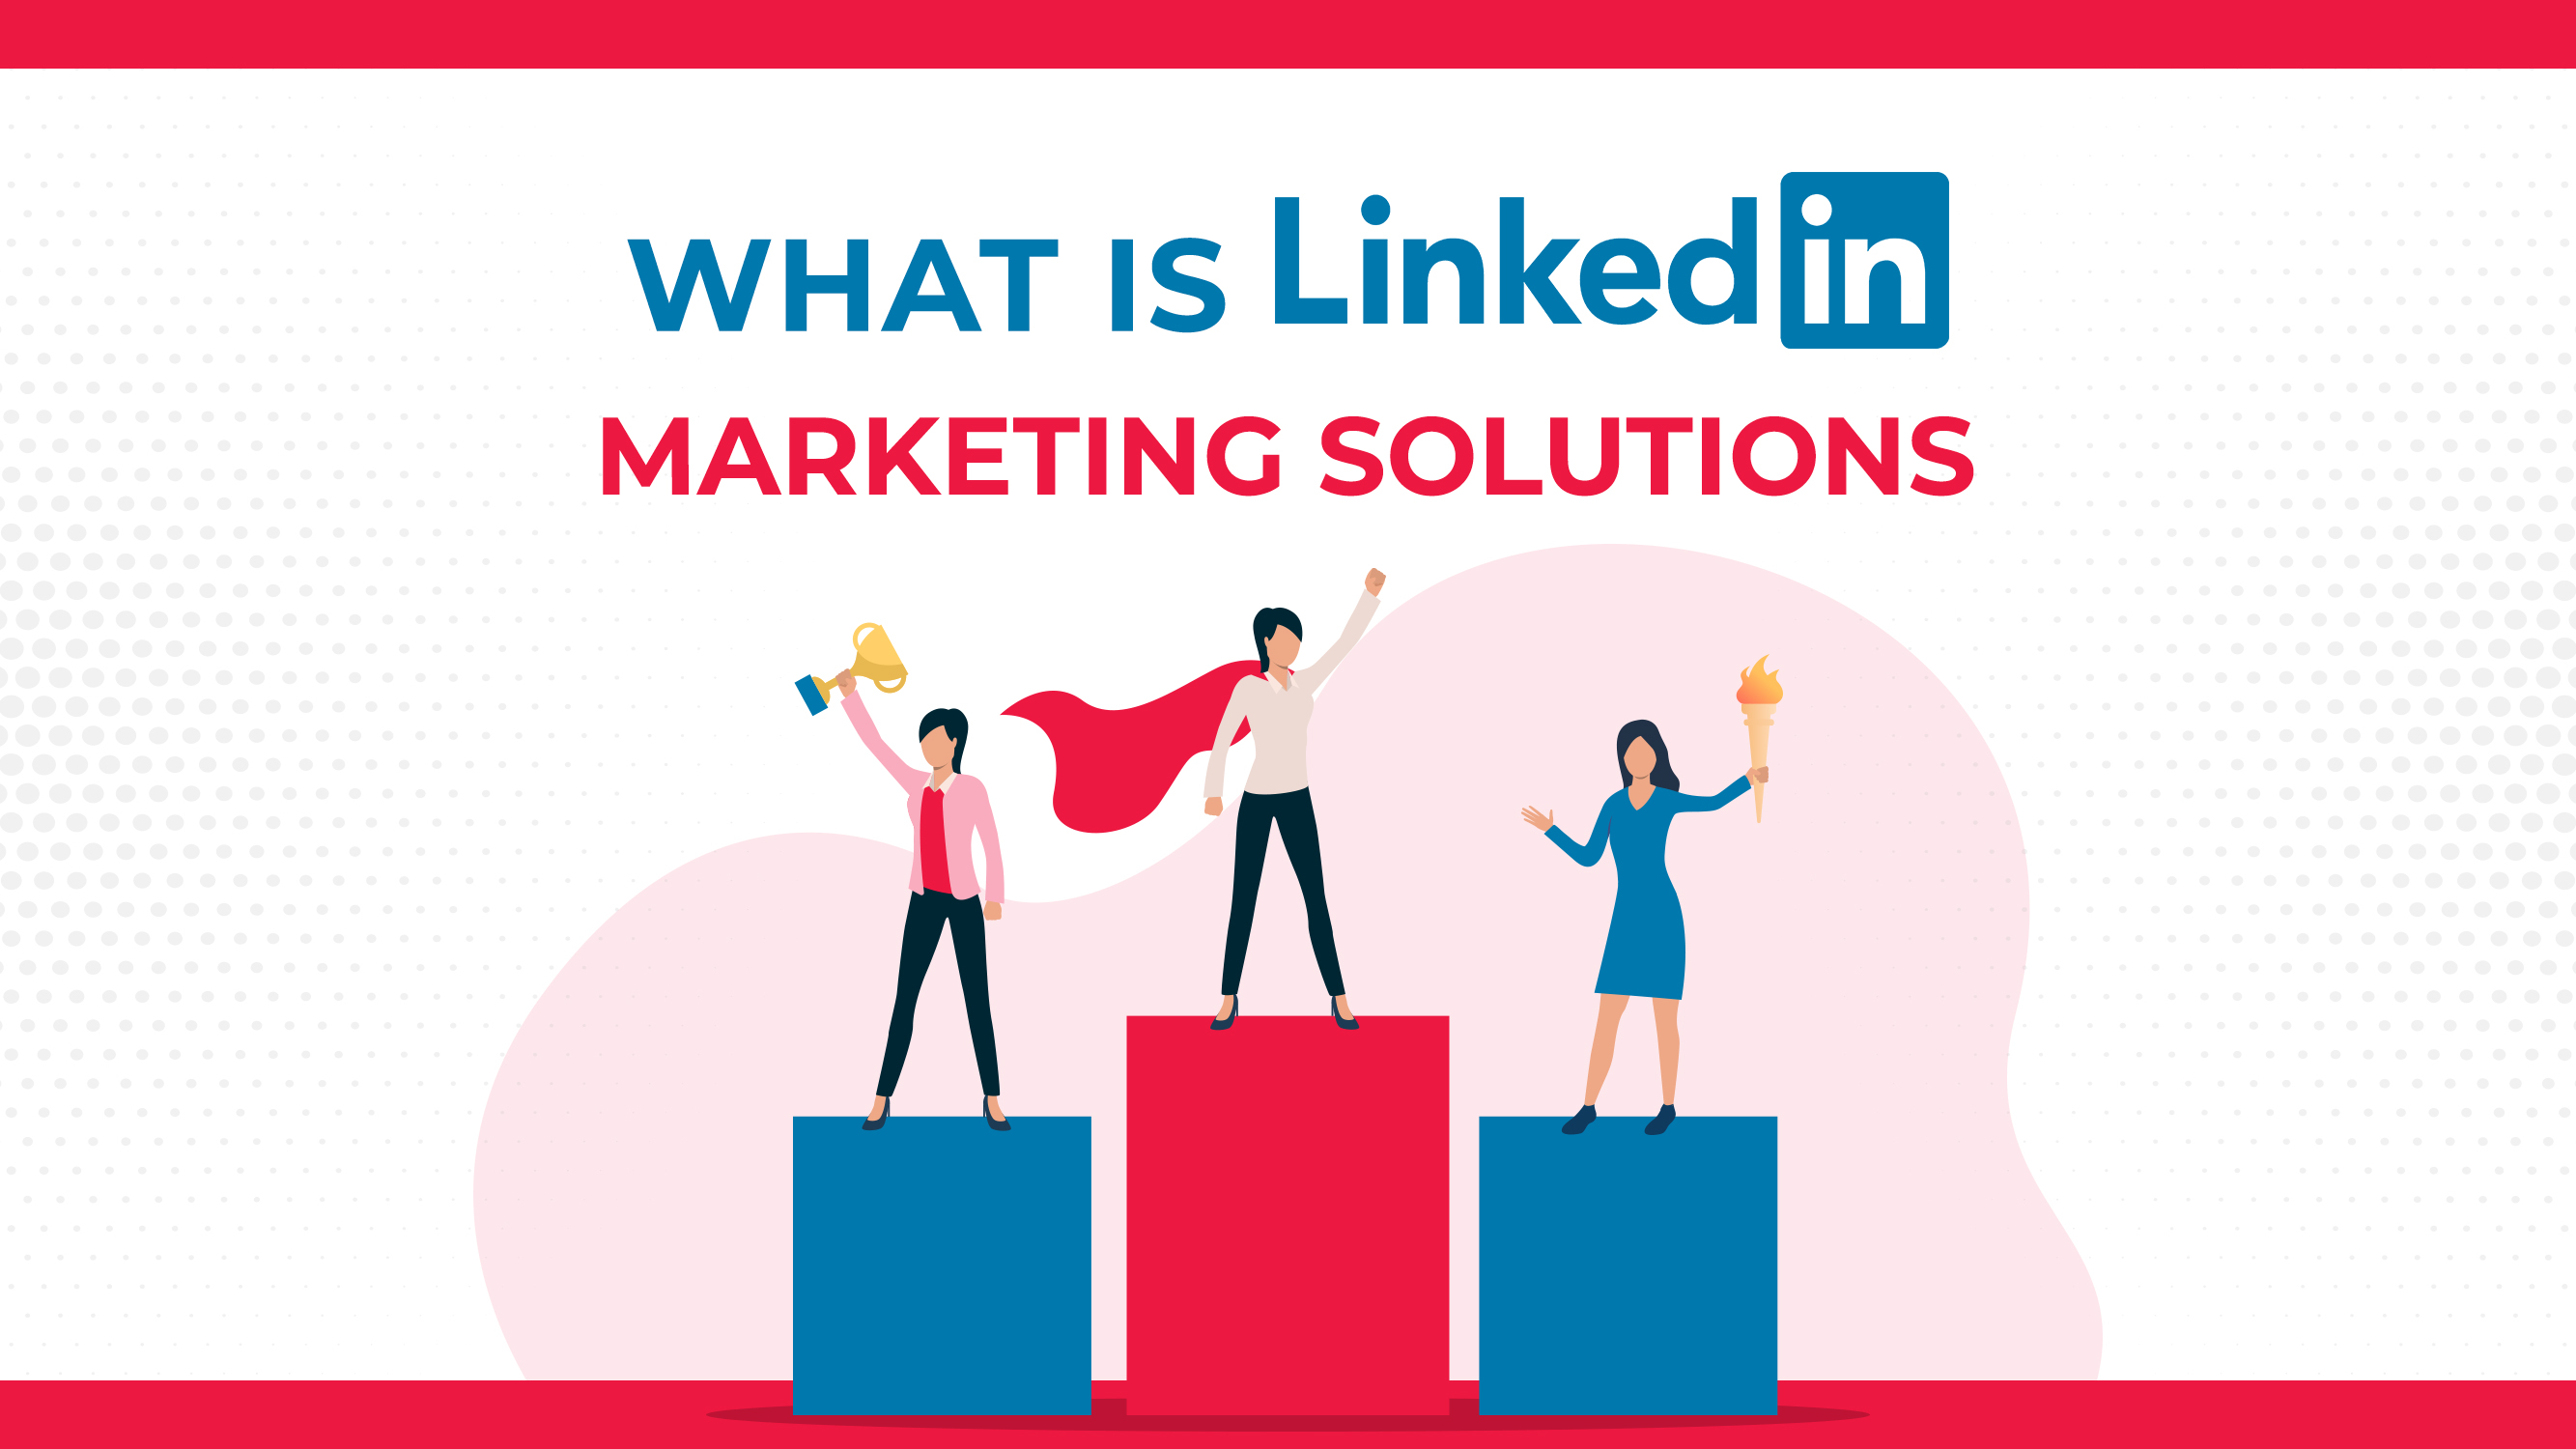 O que é LinkedIn Soluções de Marketing?